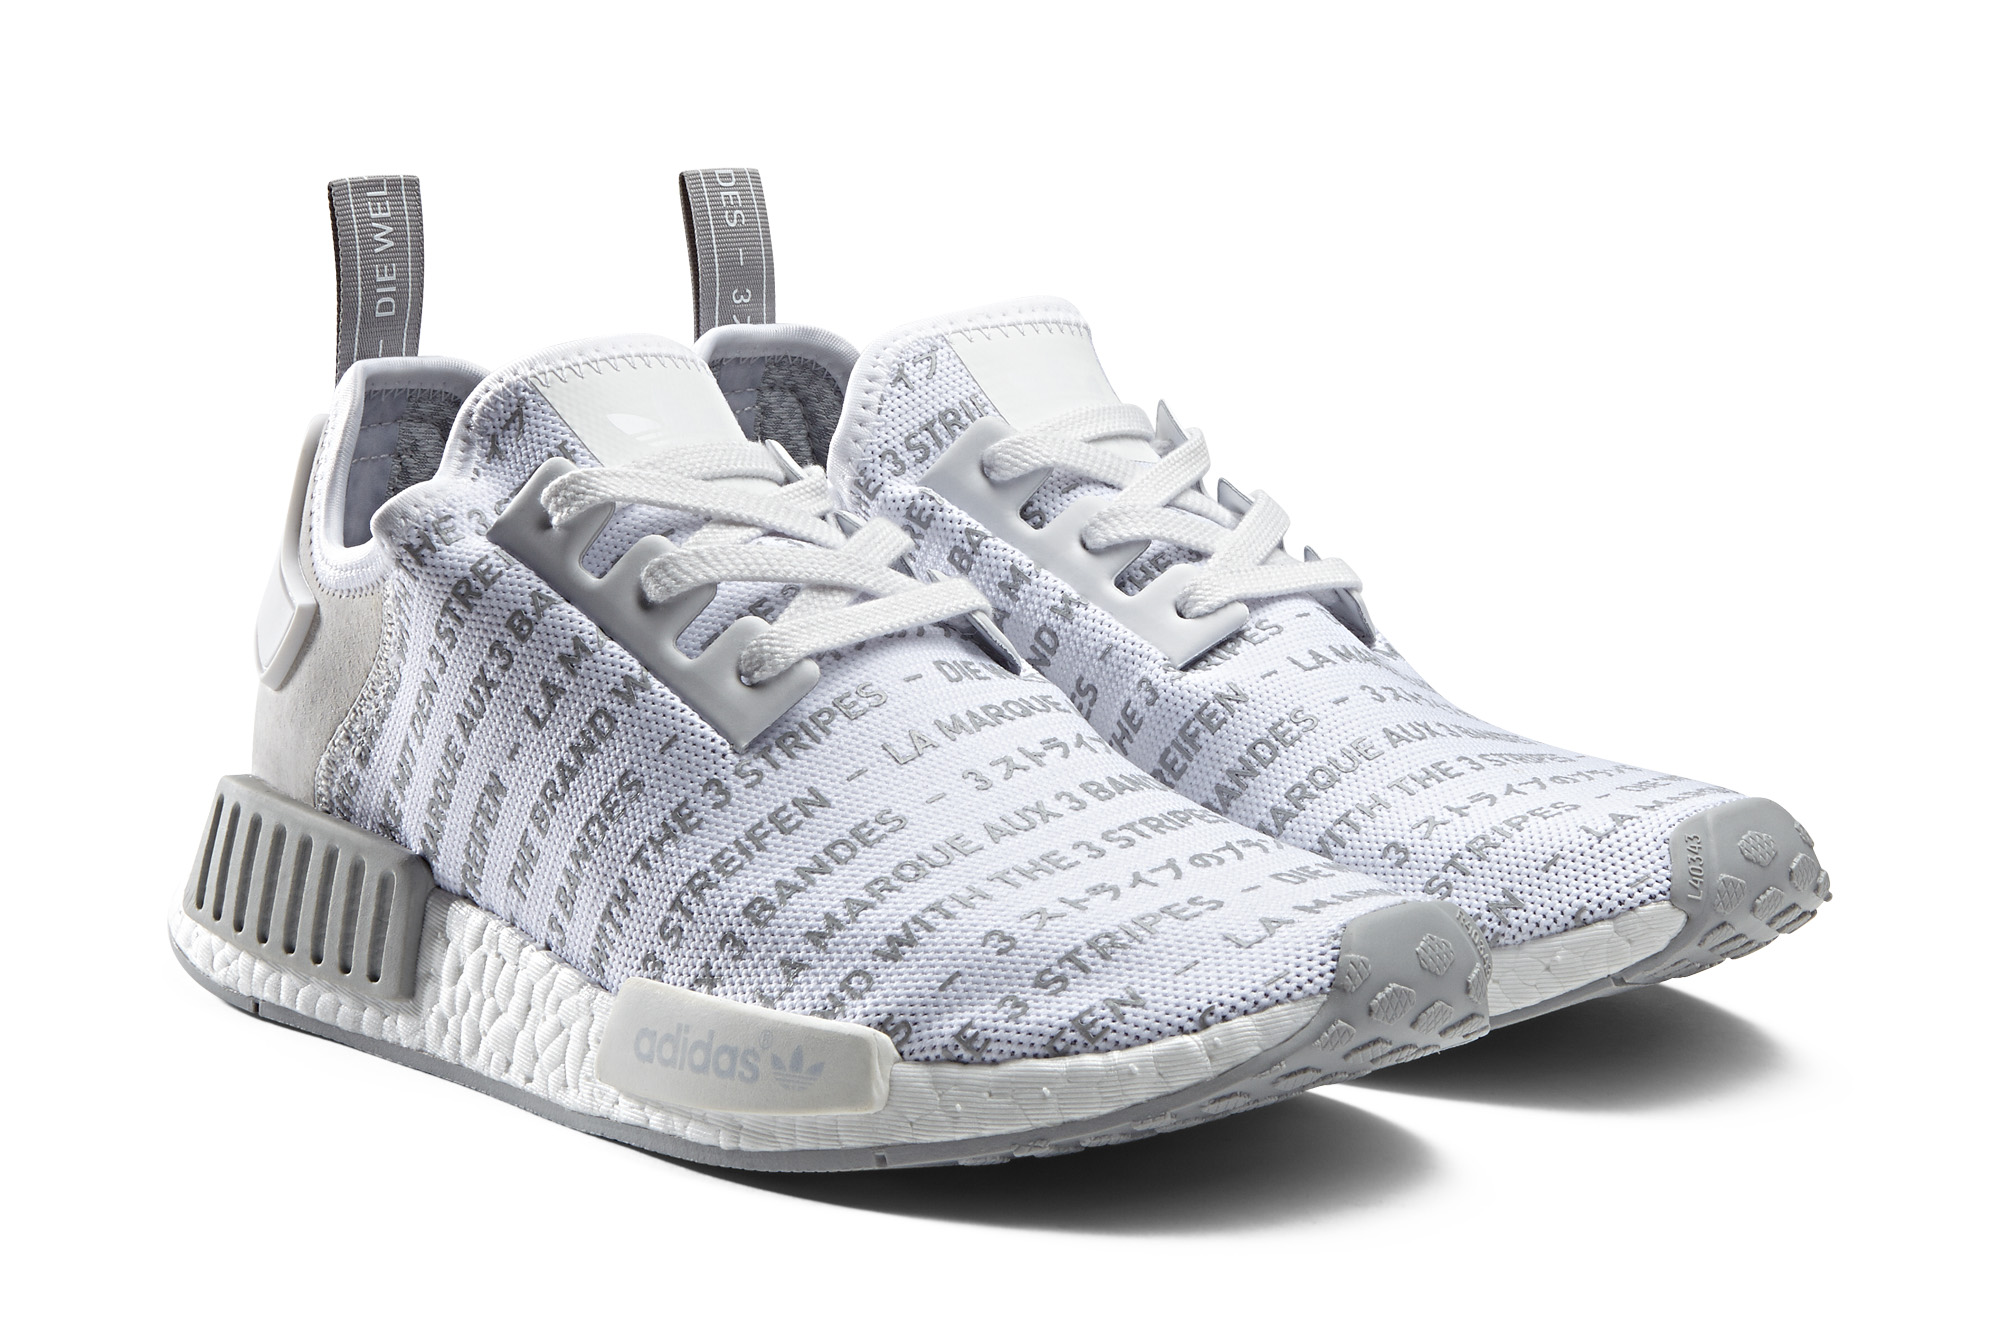 adidas originali nmd blackout / whiteout pack / consorzio